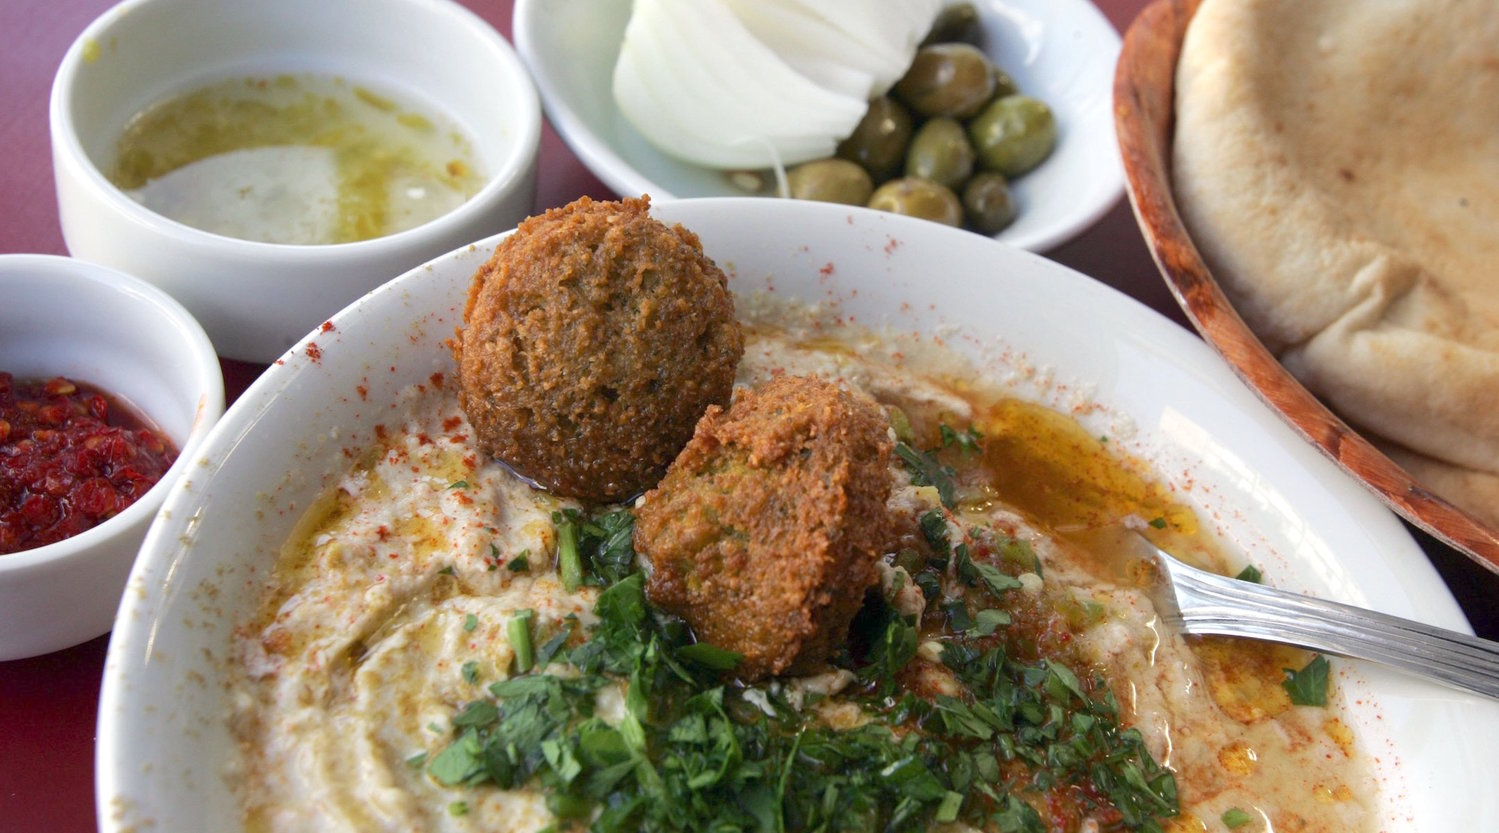 A bowl of hummous is served with olive oil, falafel balls and sprinkled with chopped parsley alongside fresh-baked pita bread, olives, a fresh onion, red chili paste and chili and lemon juice in a restaurant in Tel Aviv.